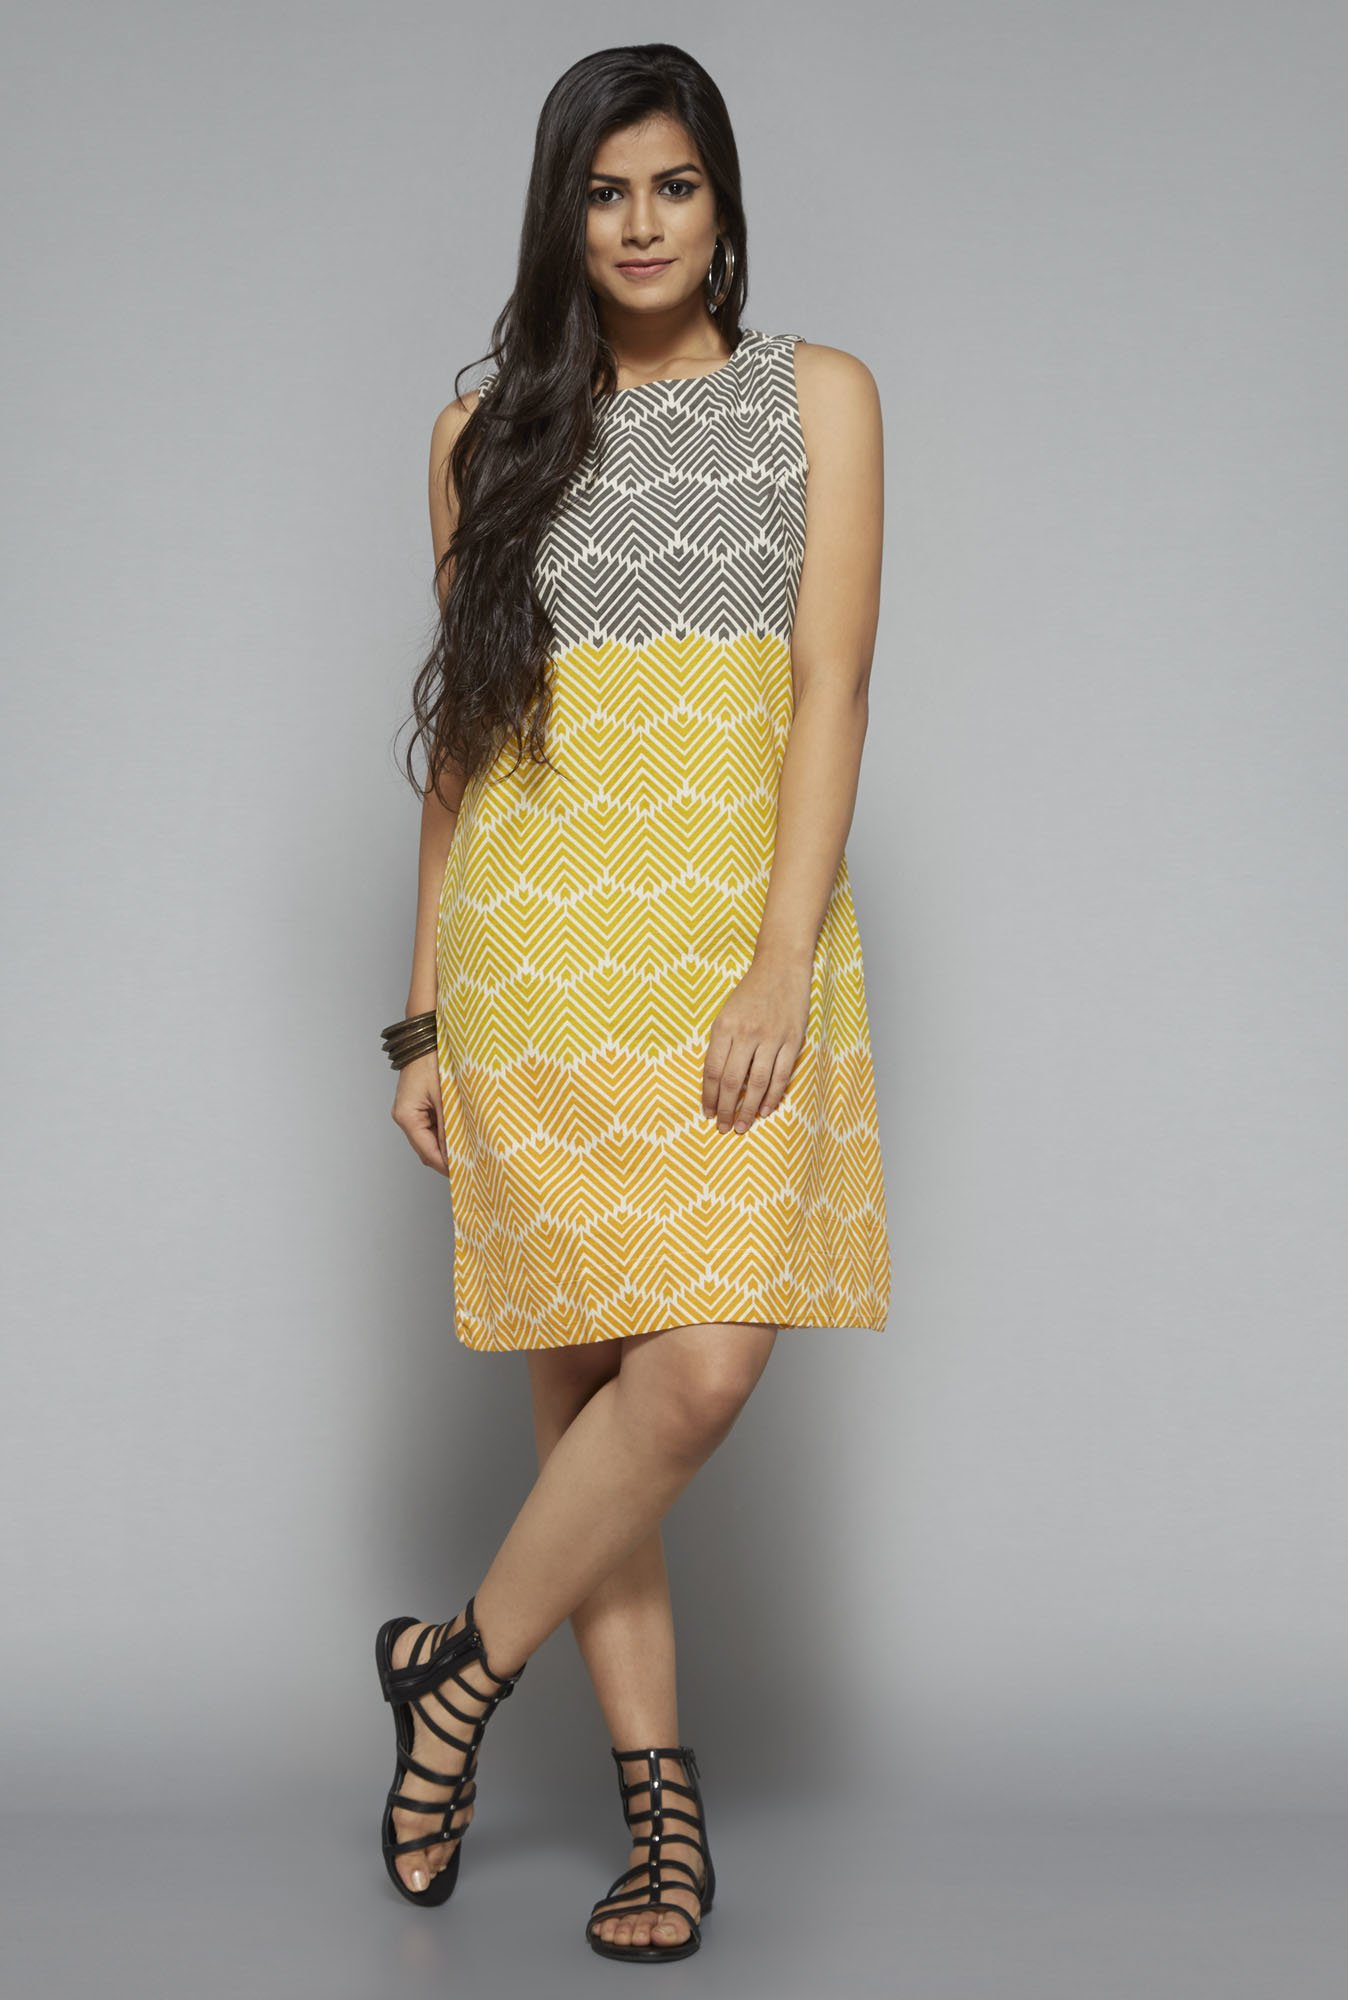 buy bombay paisley by westside yellow printed dress for